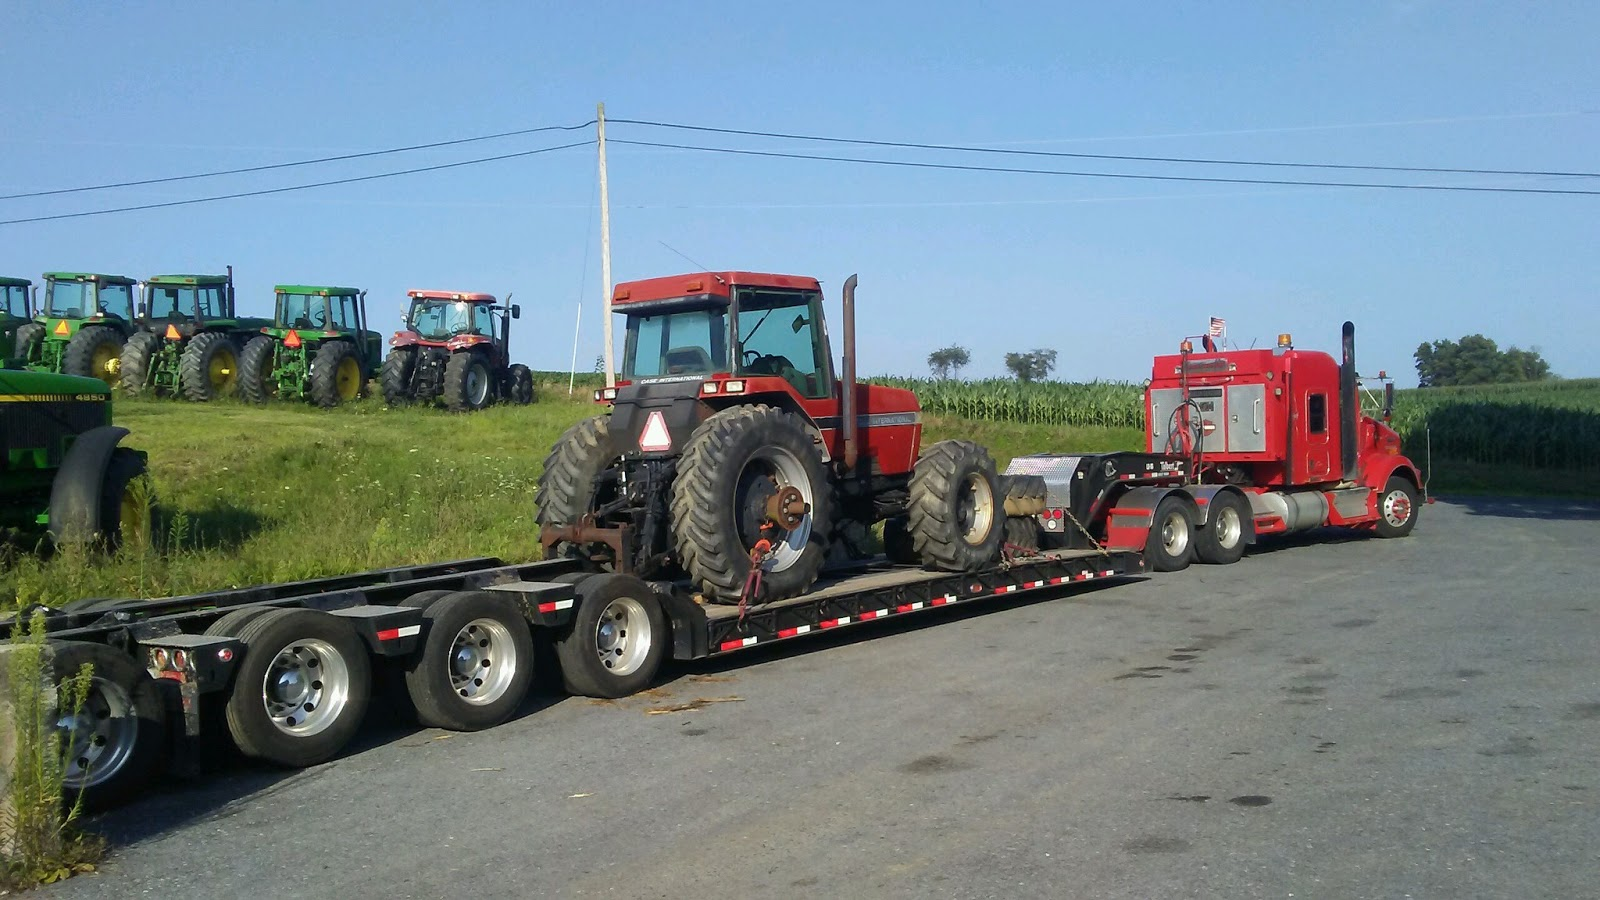 Case IH 1720 Tractor being transported